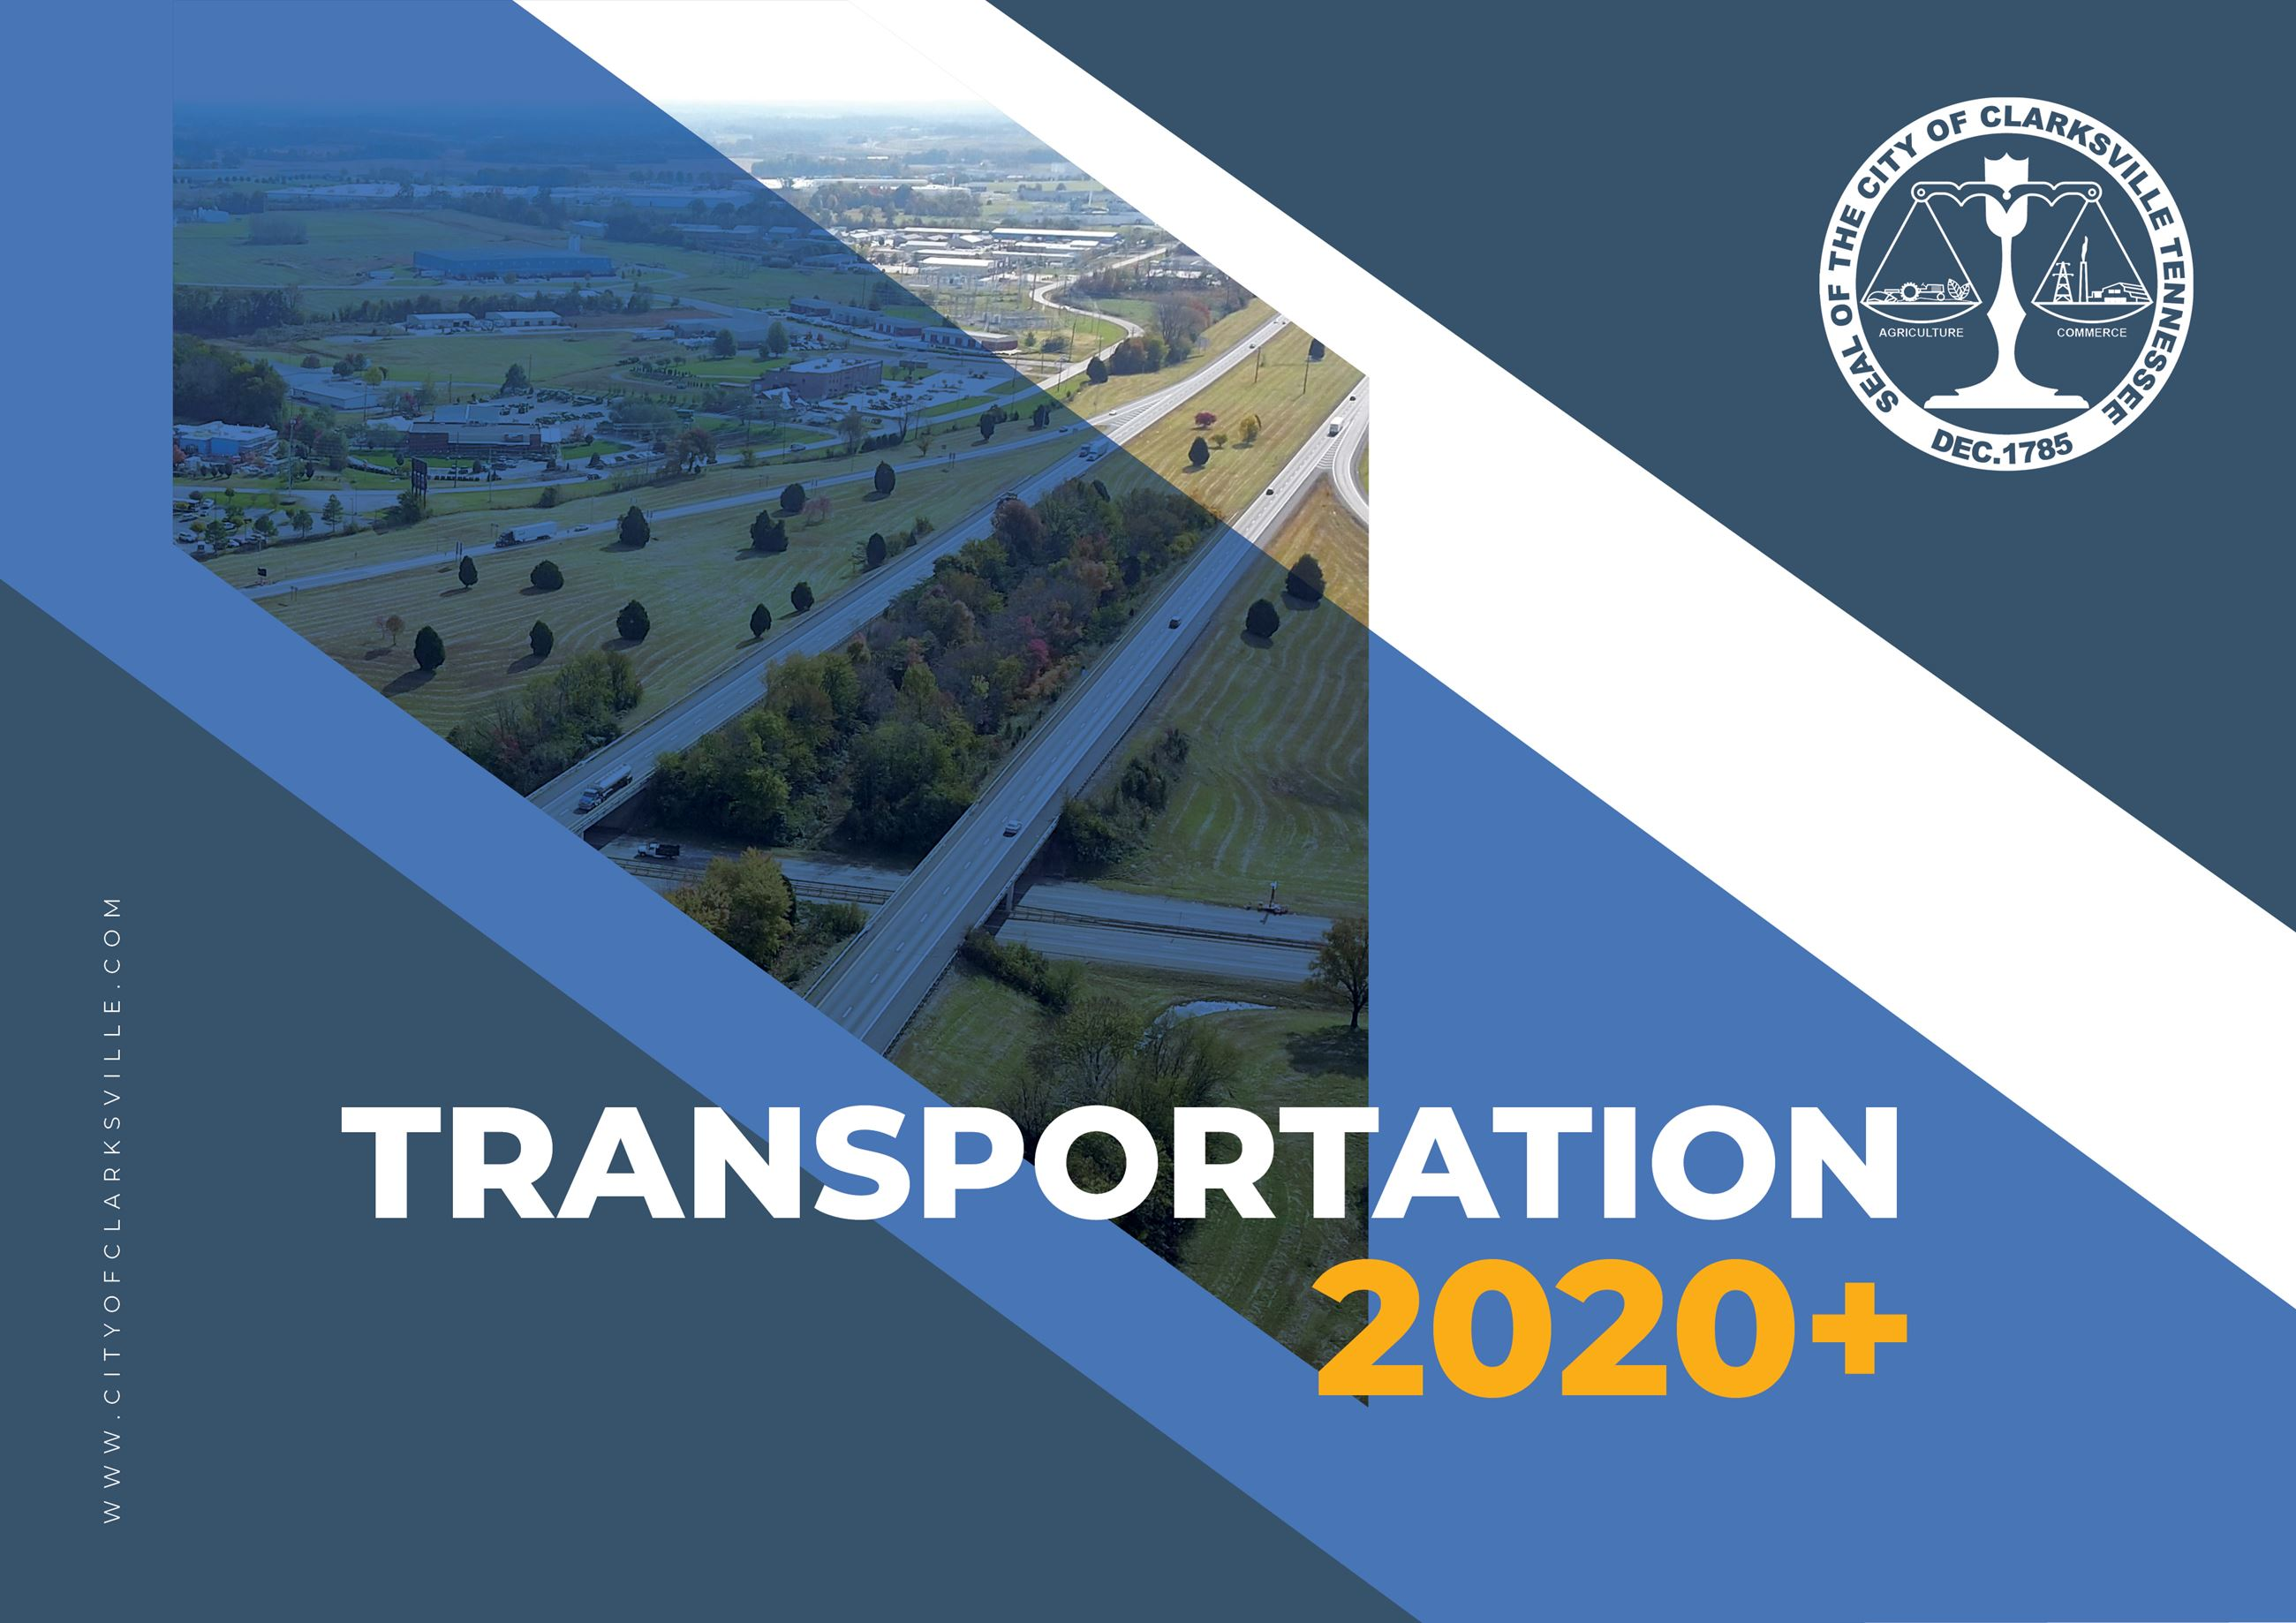 Transportation2020_FrontCover